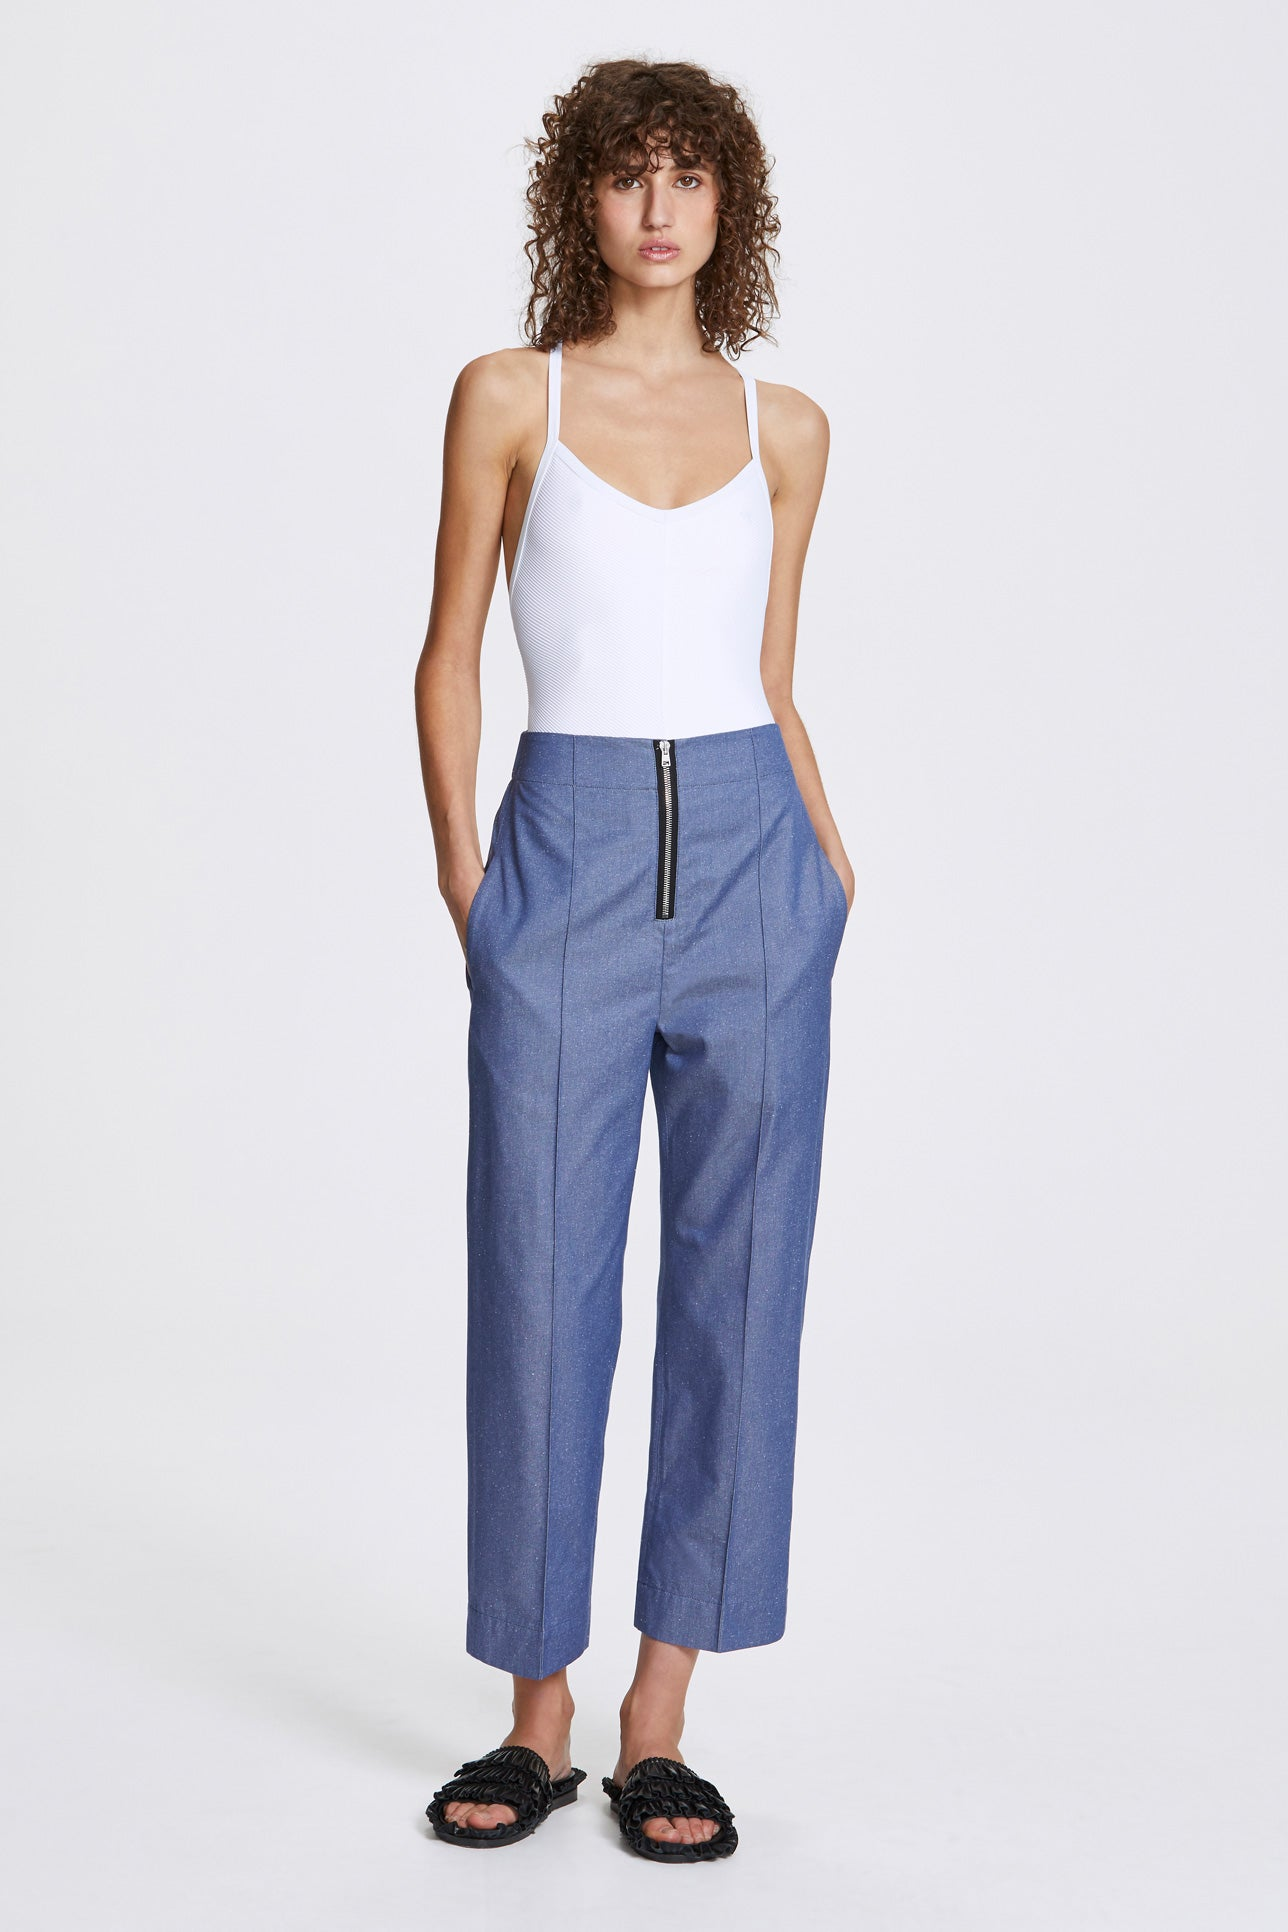 Exposed cropped leg trousers - Silk cotton - Blue denim - Resortwear trouser - Her Line